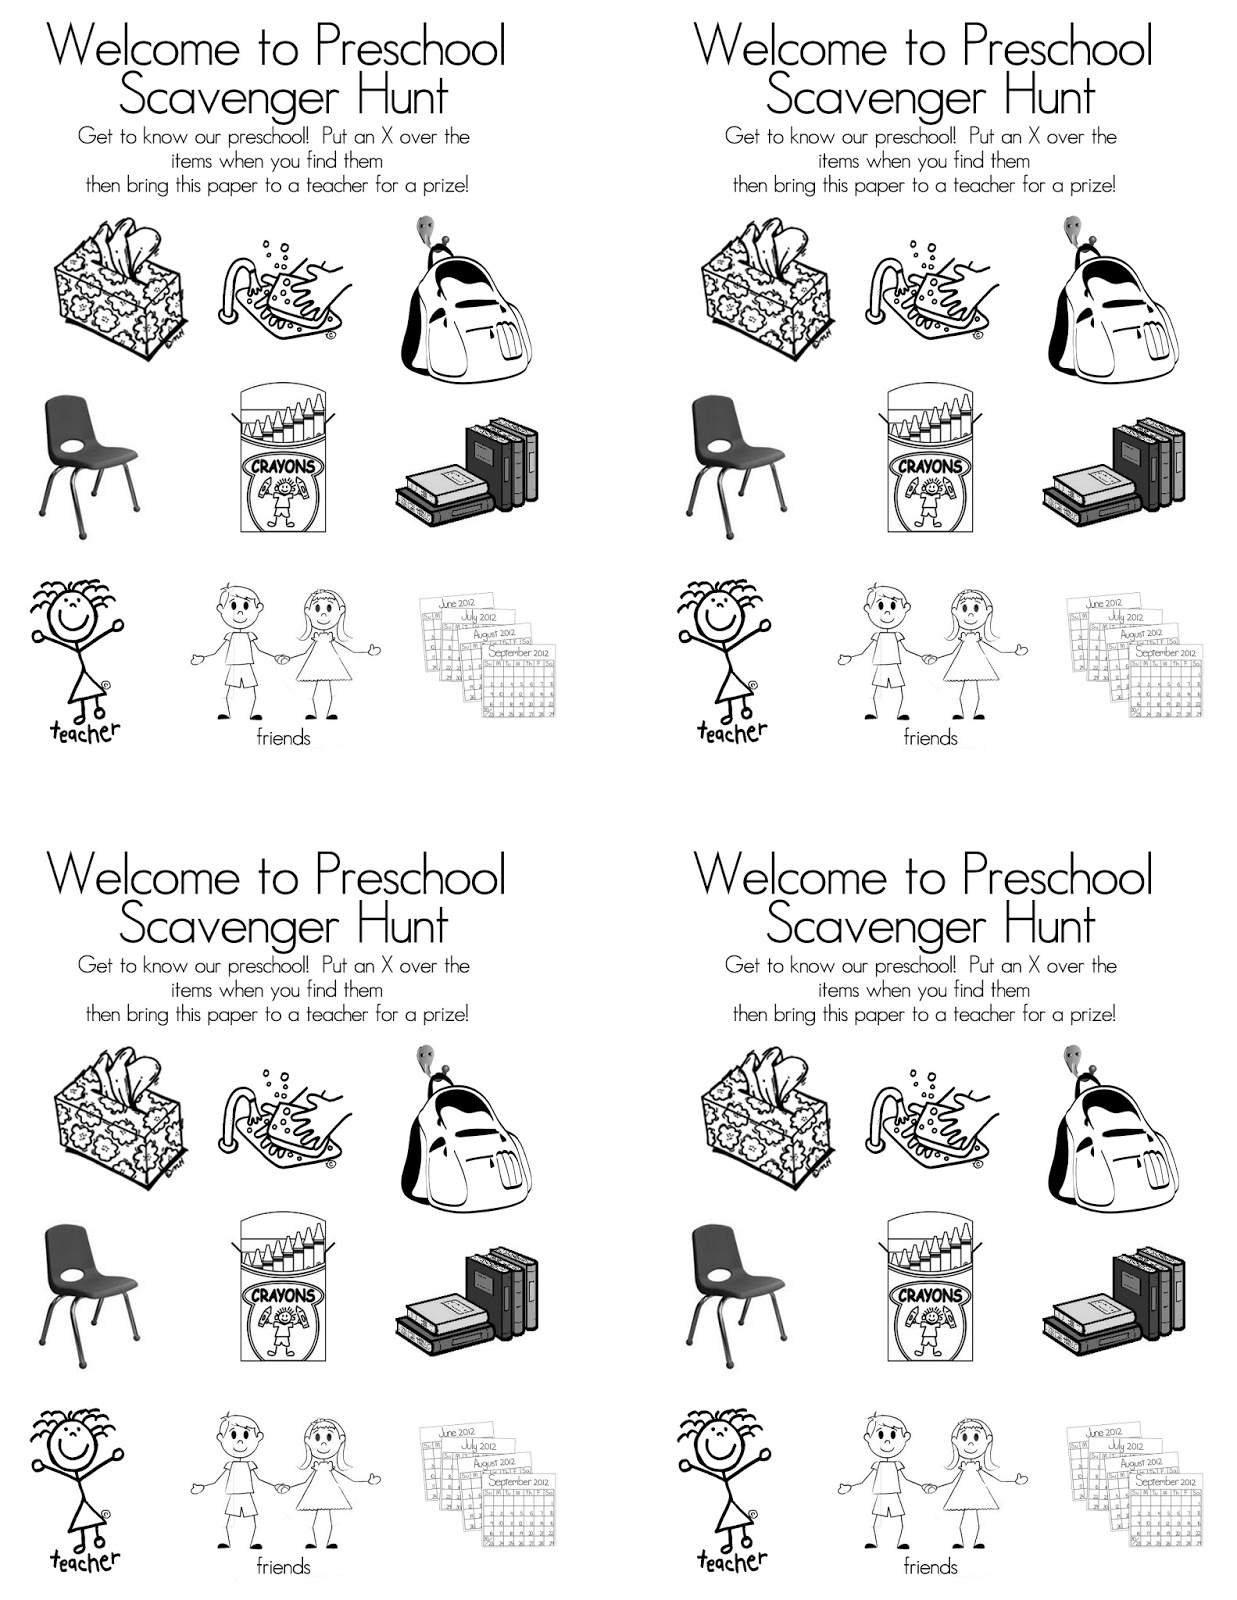 Preschool Open House Free Printable Scavenger Hunt Tips